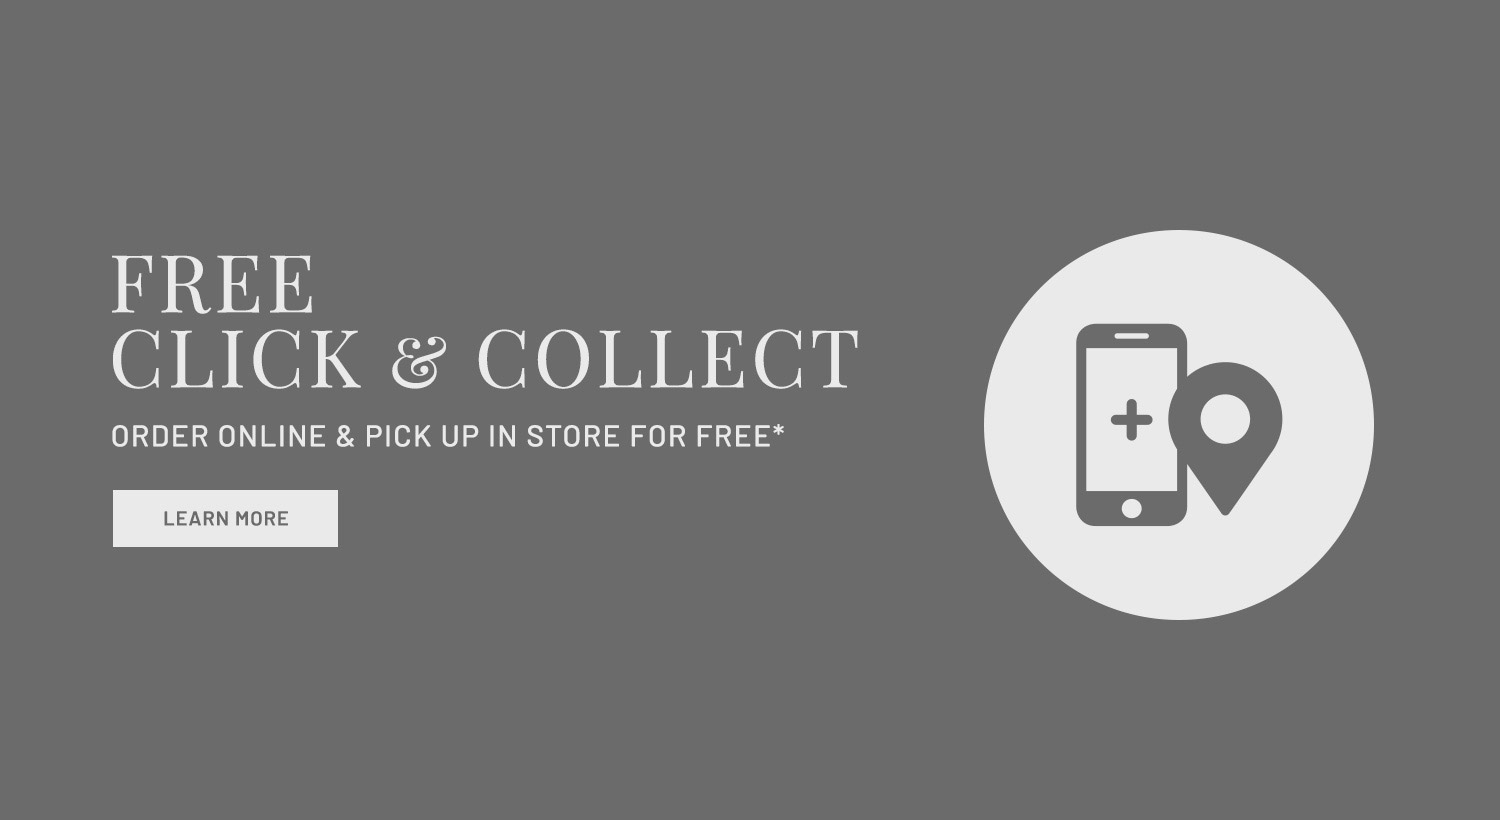 ORDER ONLINE & PICK UP IN STORE FOR FREE*